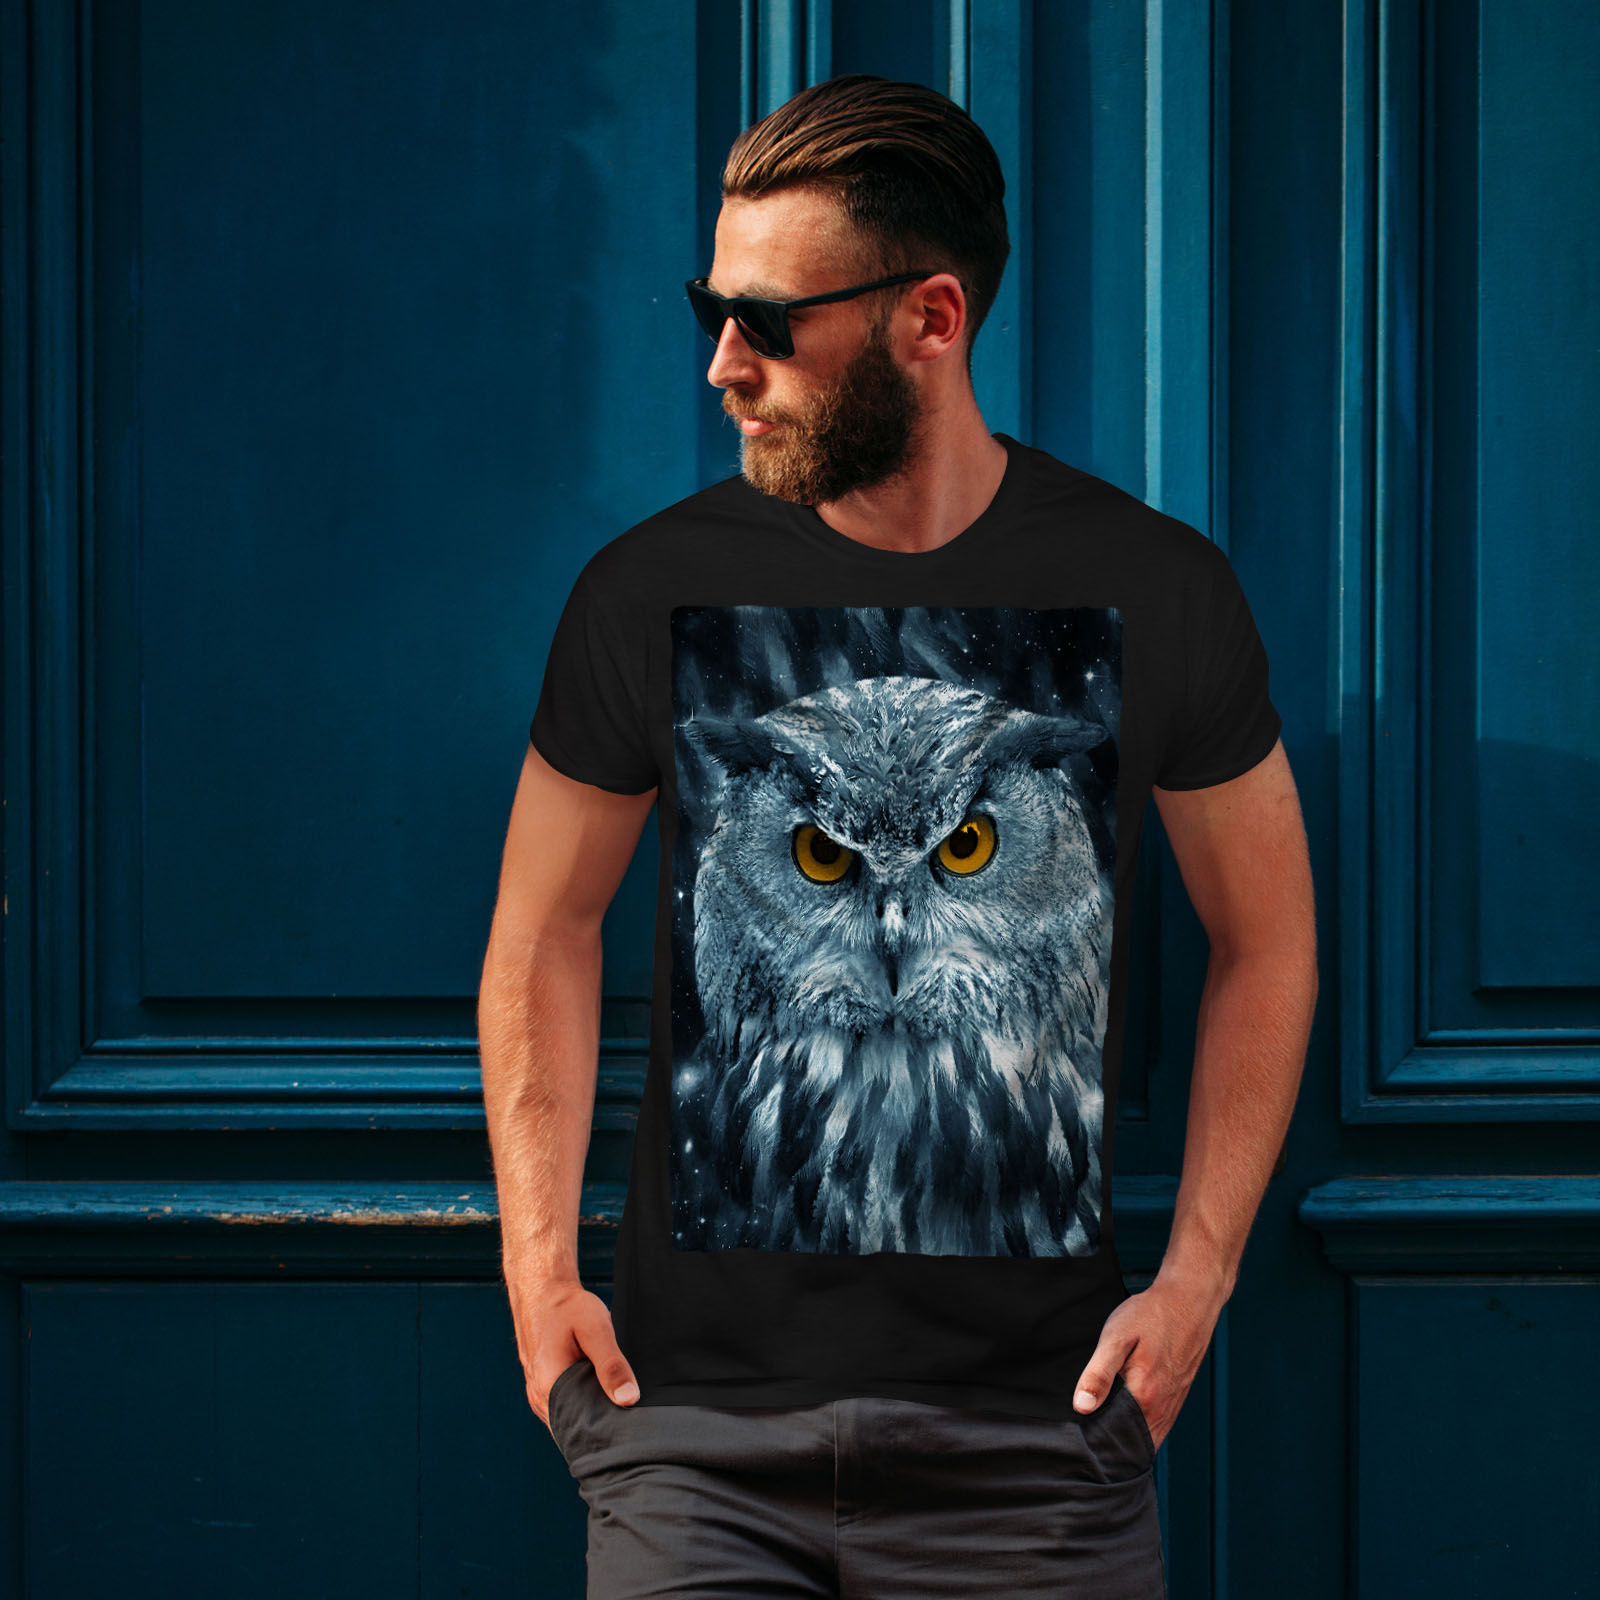 miniature 4 - Wellcoda-Wild-Looking-Owl-Mens-T-shirt-Mother-Graphic-Design-Printed-Tee